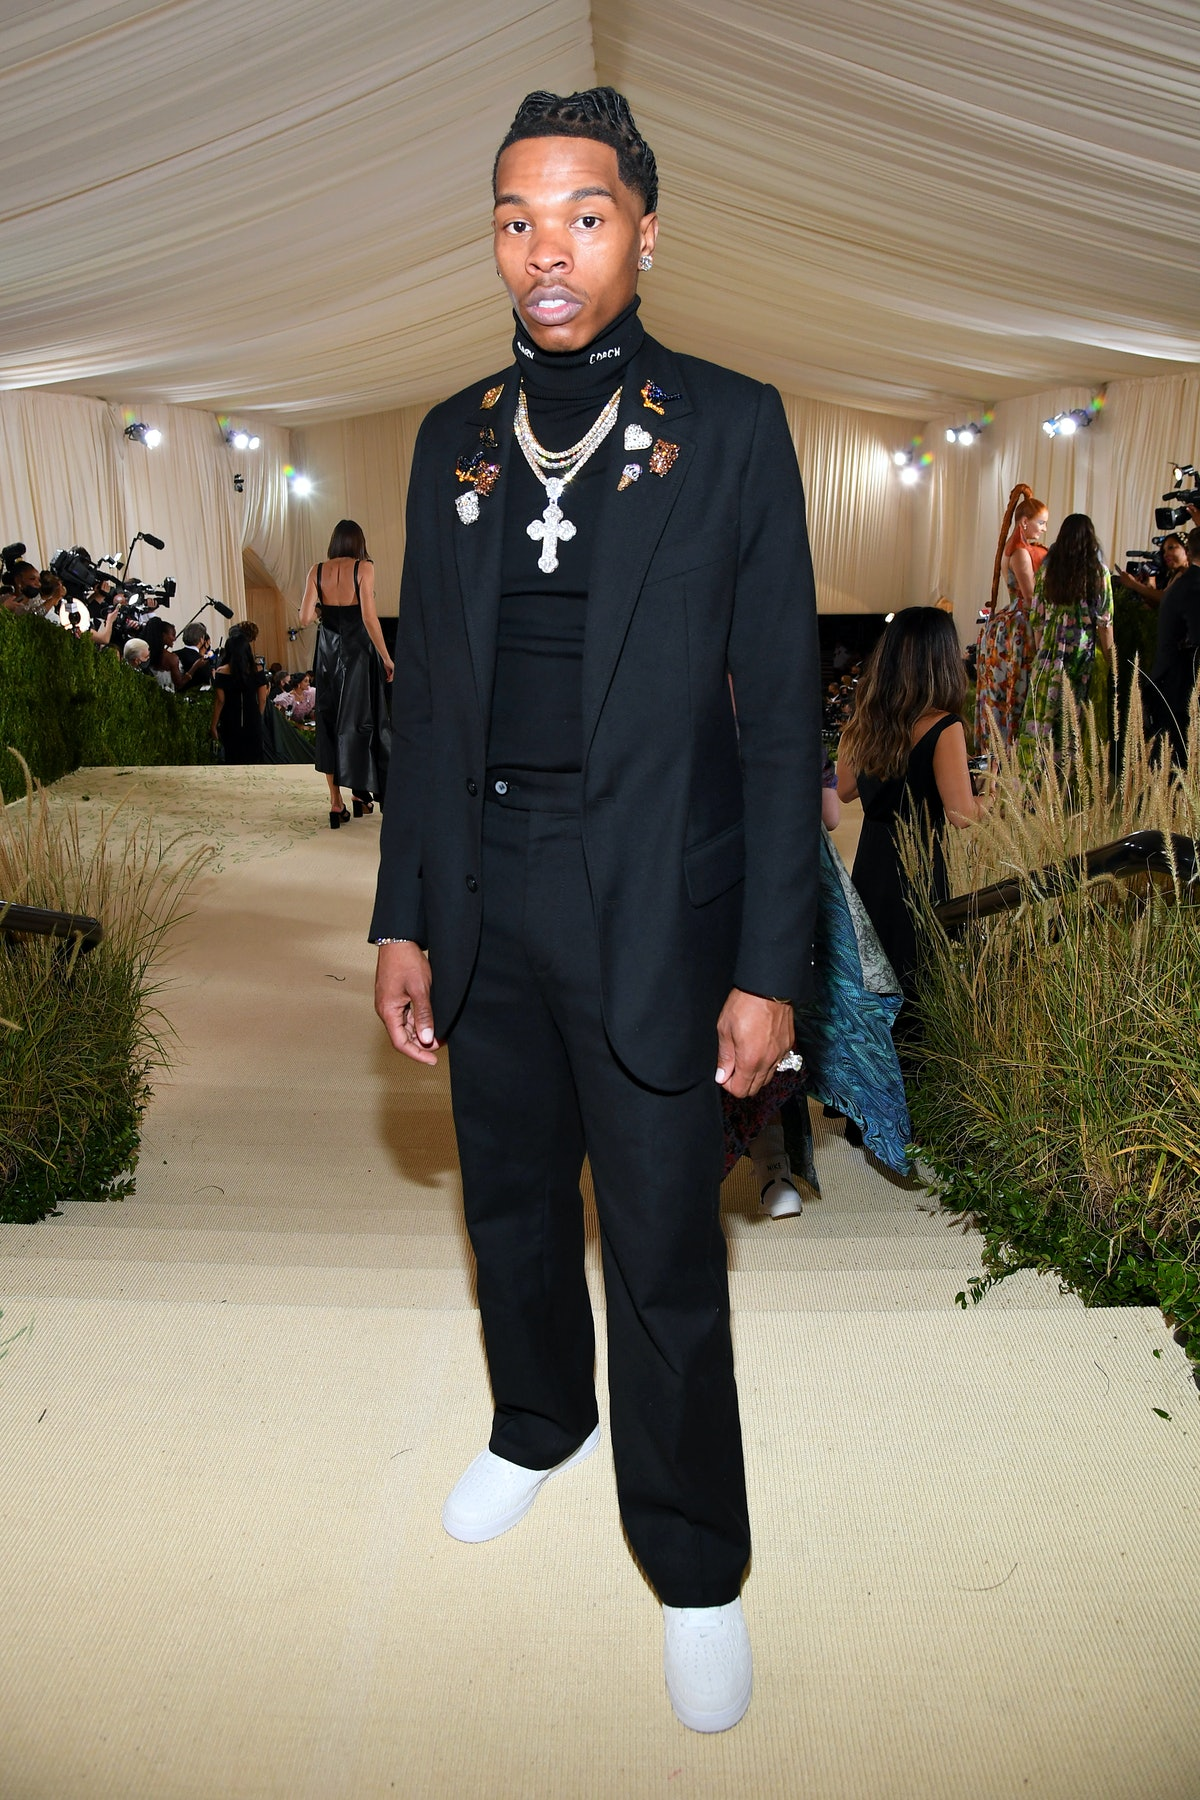 NEW YORK, NEW YORK - SEPTEMBER 13: Lil Baby attends The 2021 Met Gala Celebrating In America: A Lexi...